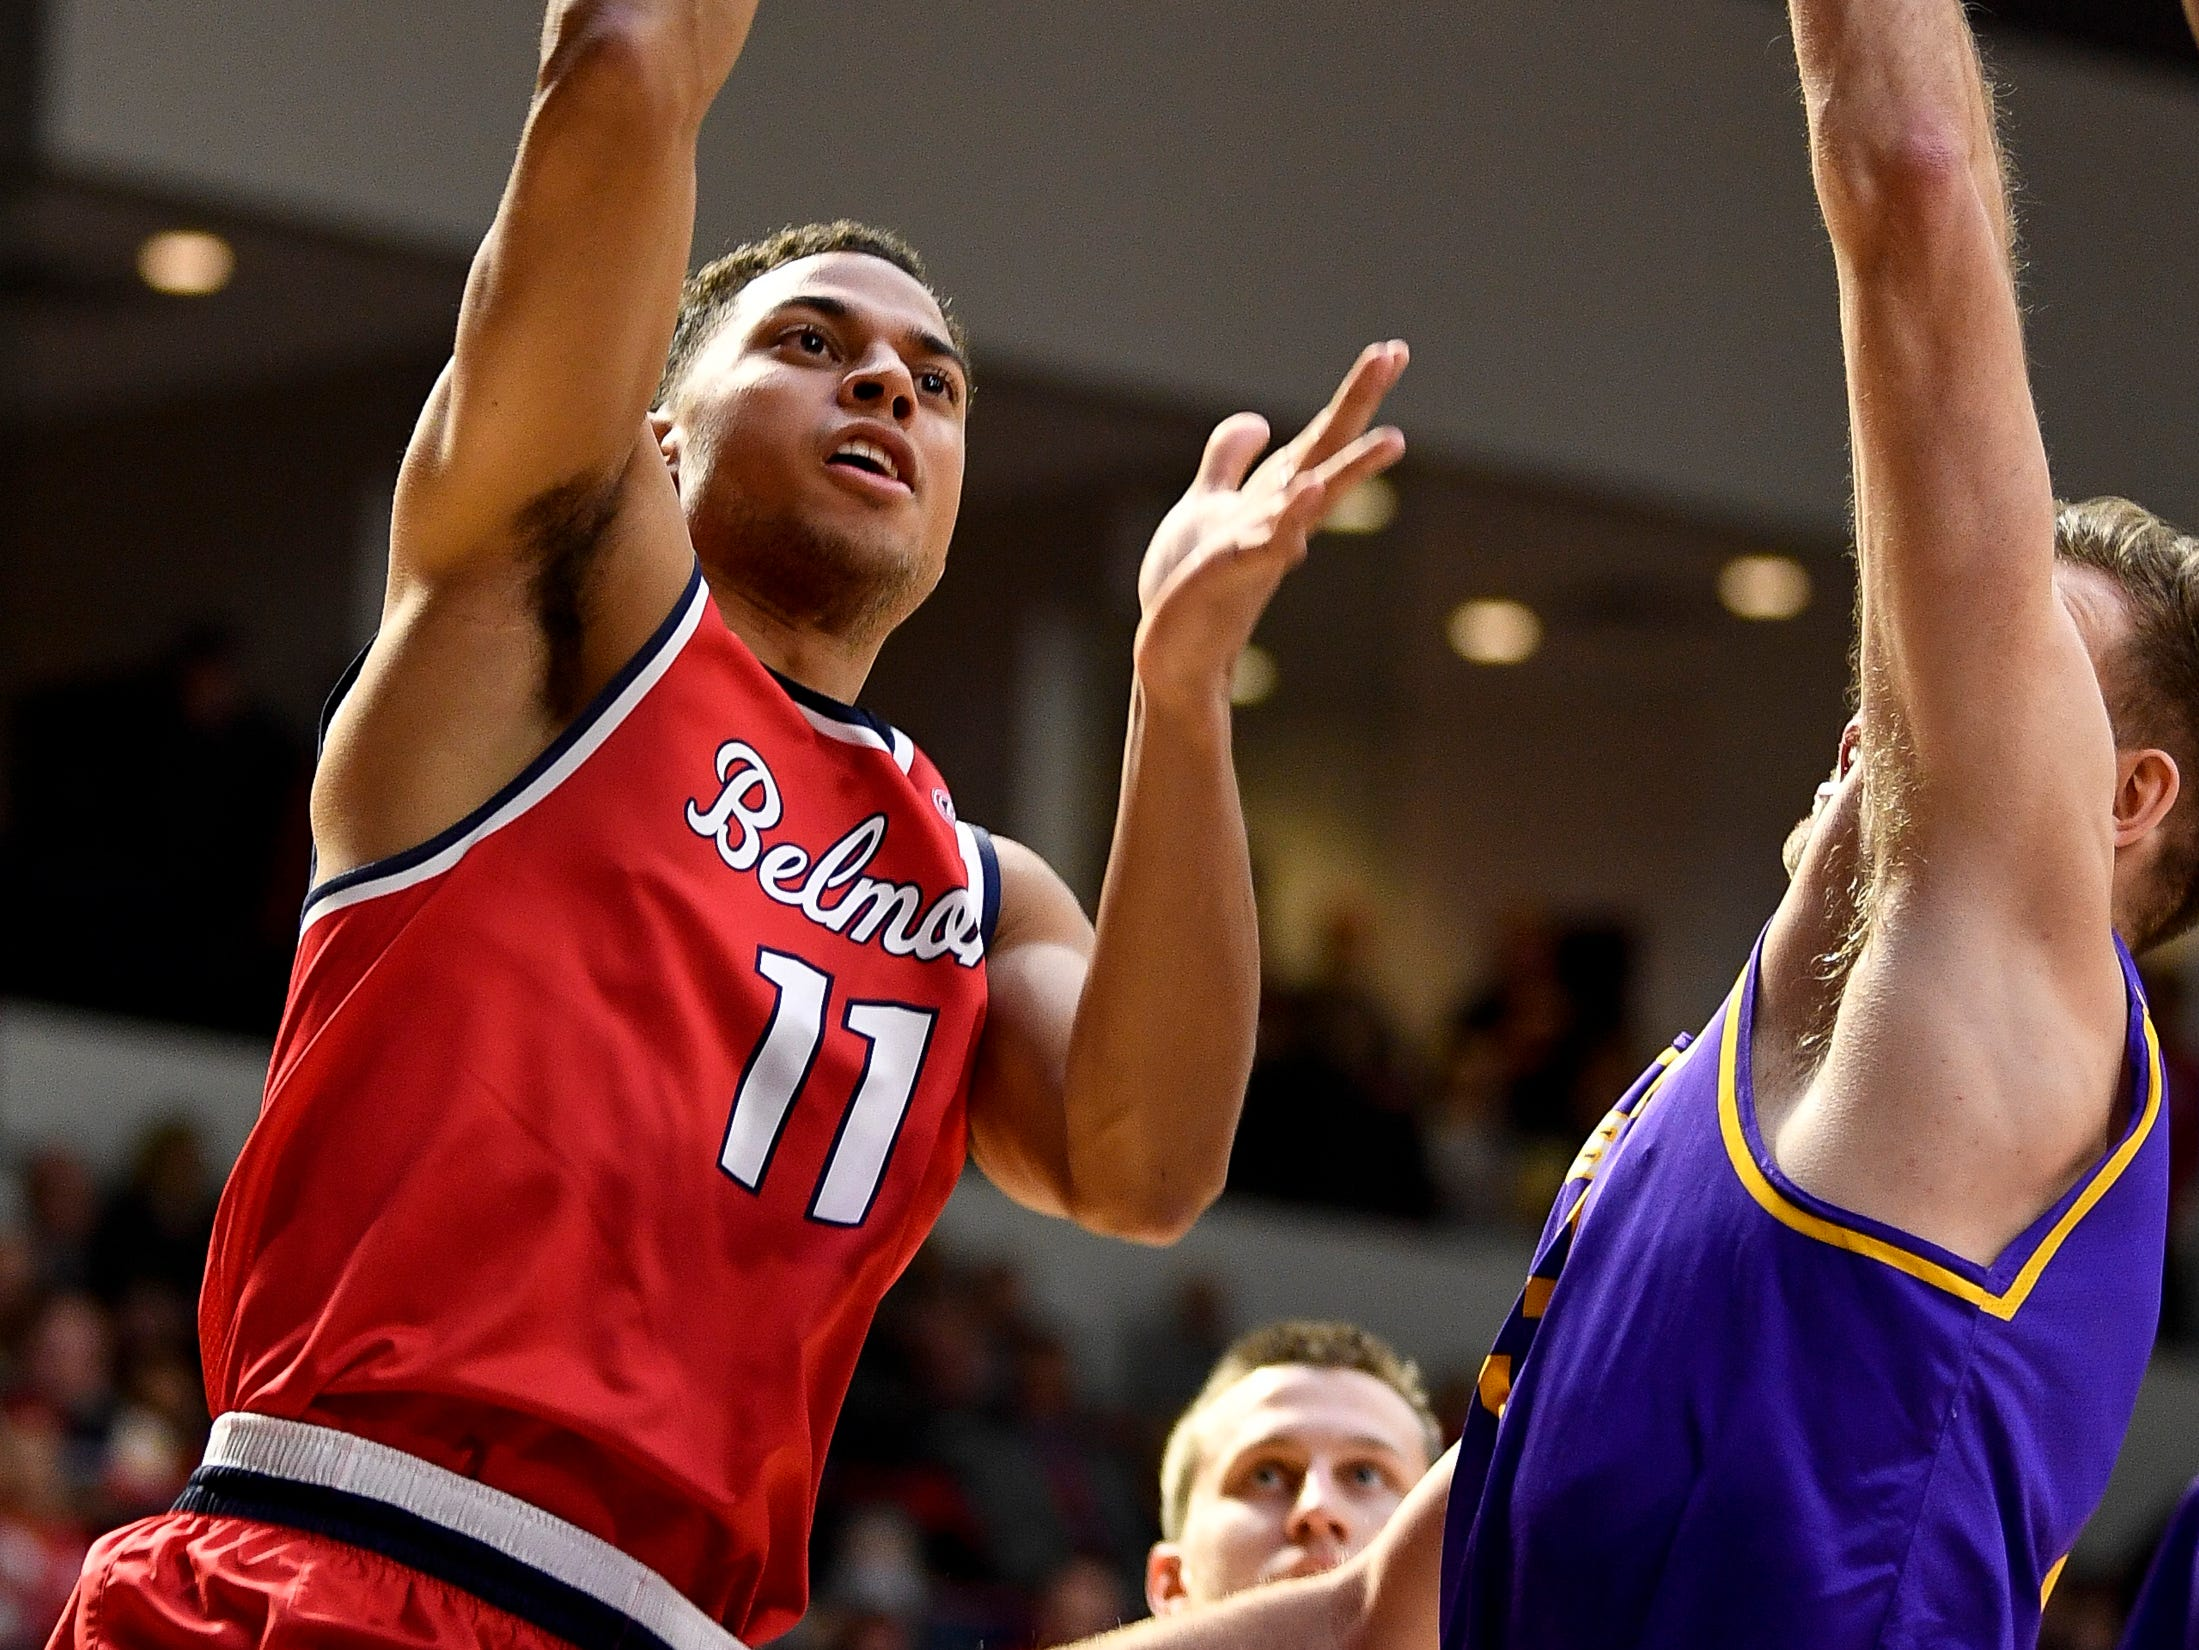 Belmont guard Kevin McClain (11) shoots over Lipscomb guard Michael Buckland (3) during the first half at the Curb Event Center in Nashville, Tenn., Tuesday, Dec. 4, 2018.